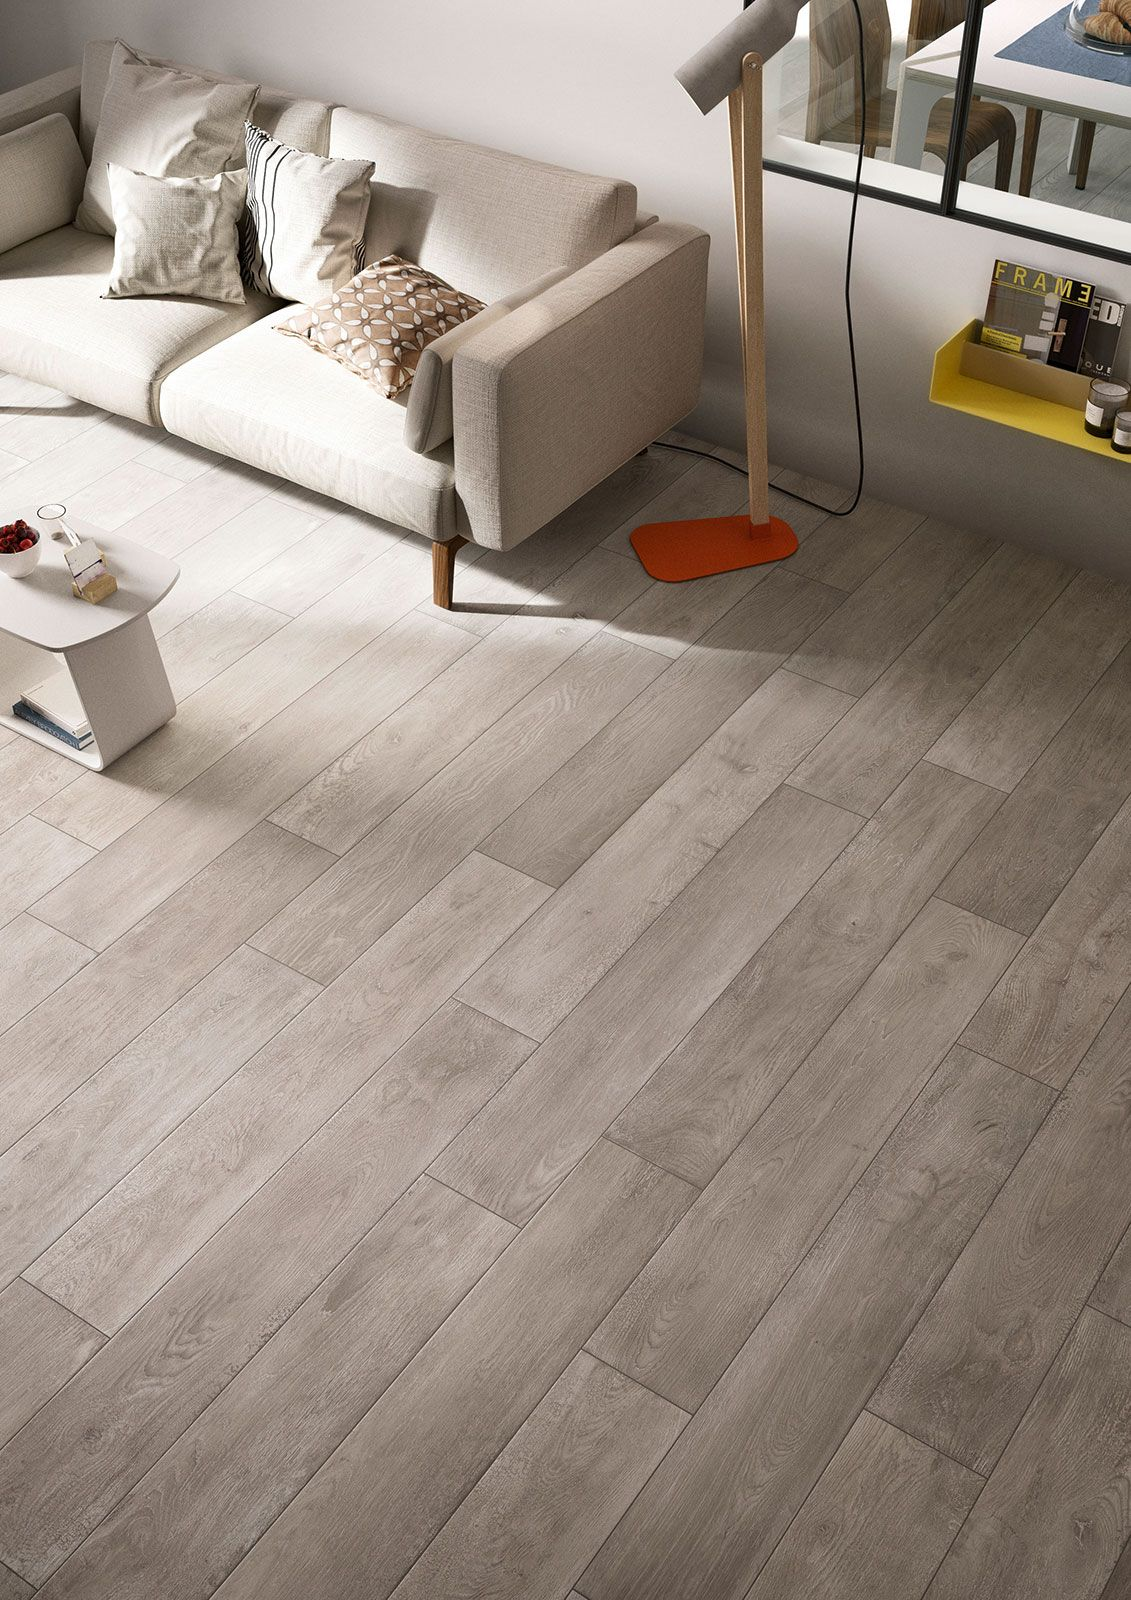 wood tile flooring. Treverktime Ceramic Tiles Marazzi_6535 Wood Tile Flooring A